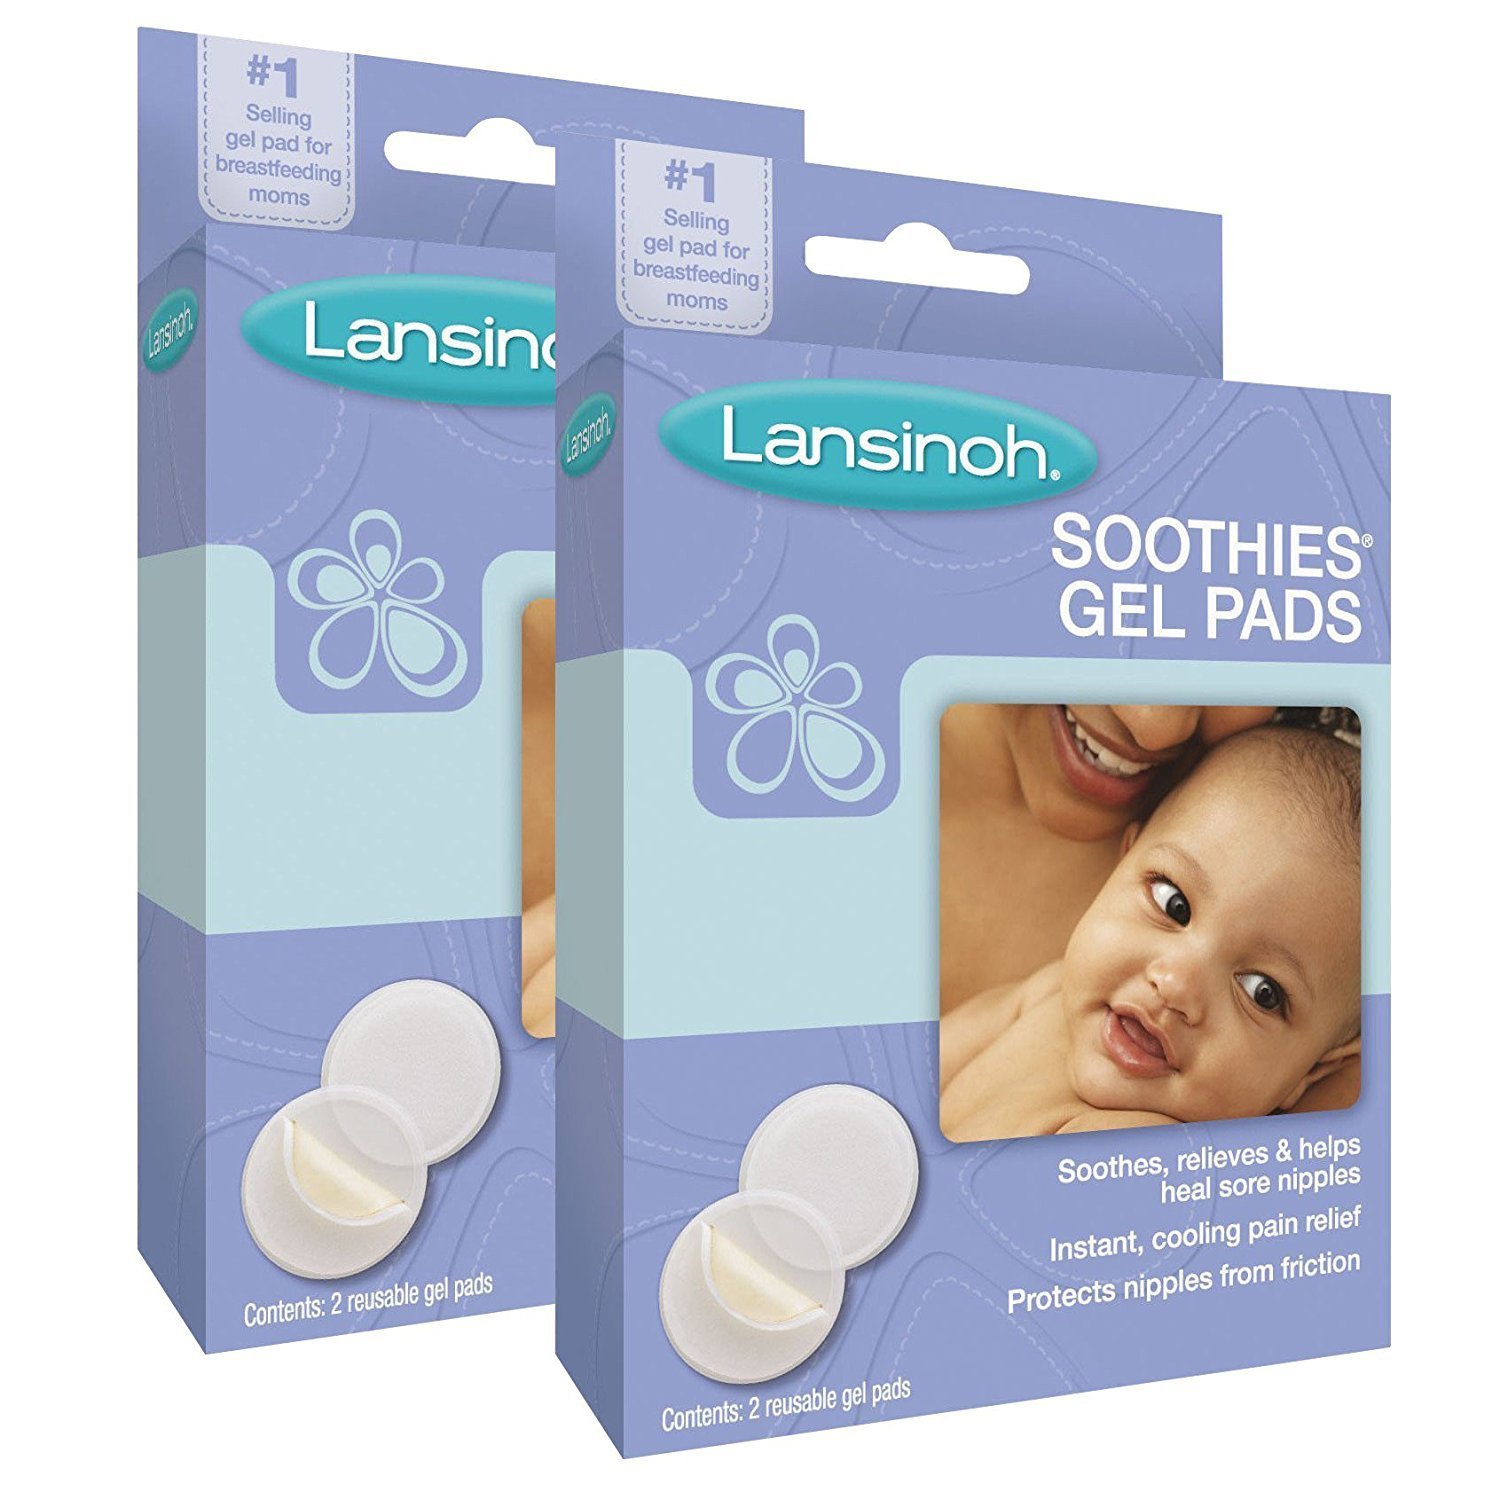 Lansinoh Laboratories Soothies Gel Pads, 4 Count 65005